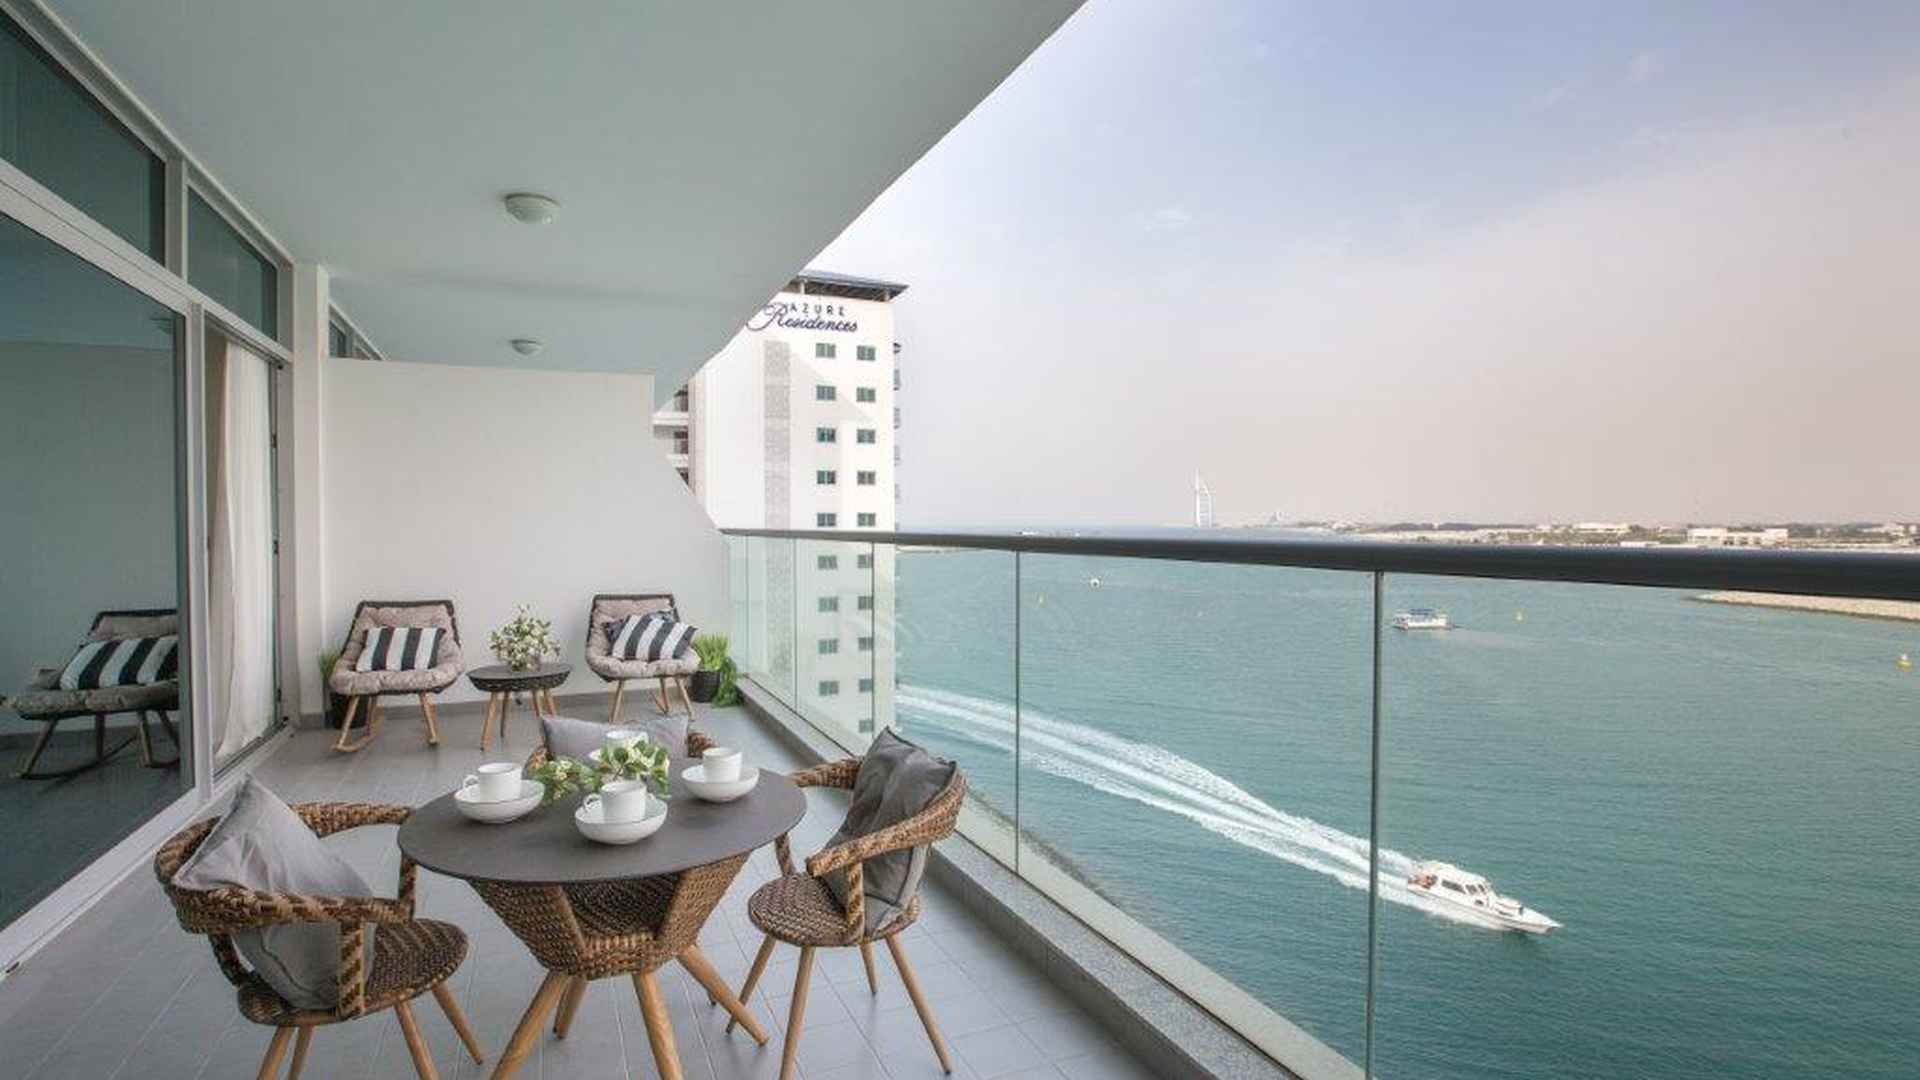 Water View from Azure Residences, Palm Jumeirah